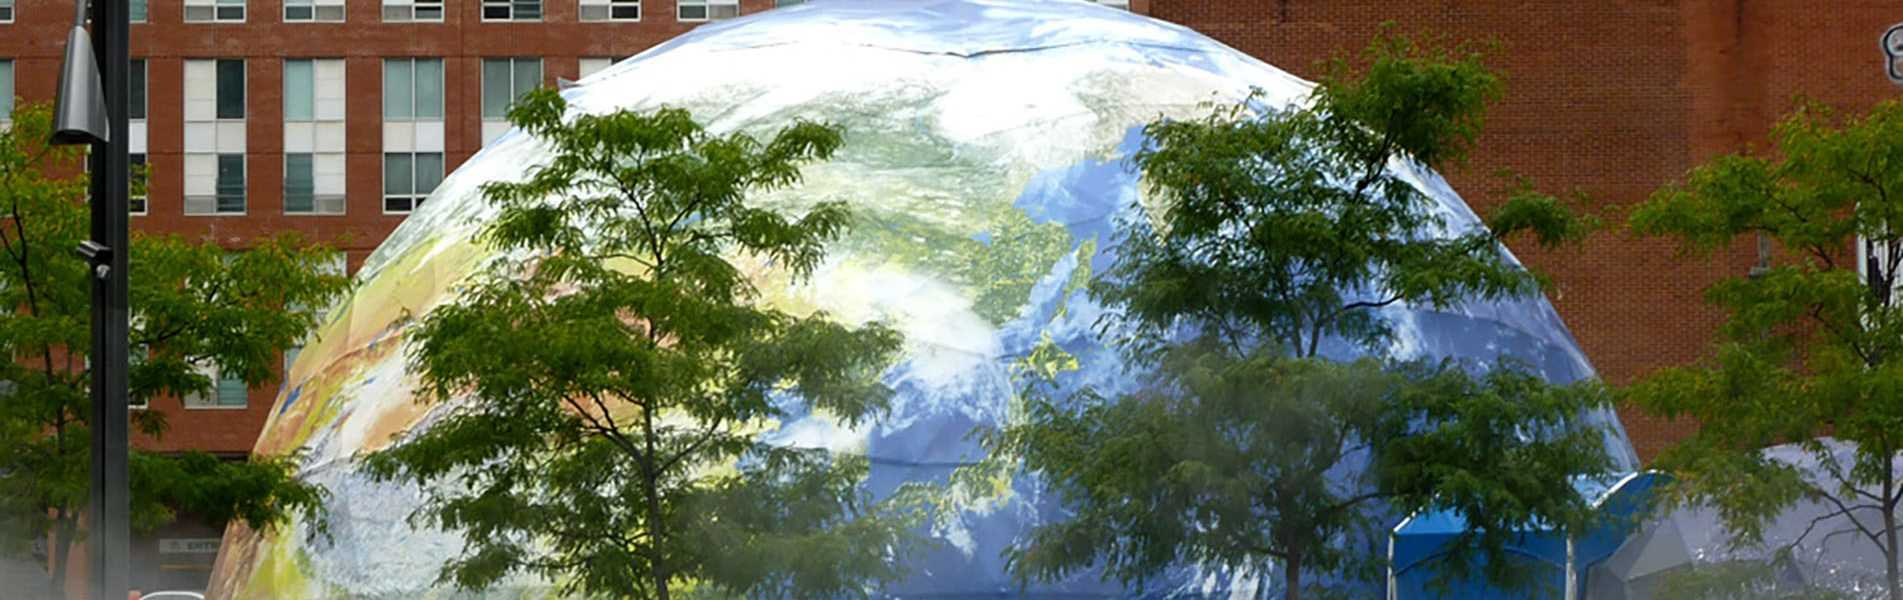 70ft Printed Earth Dome